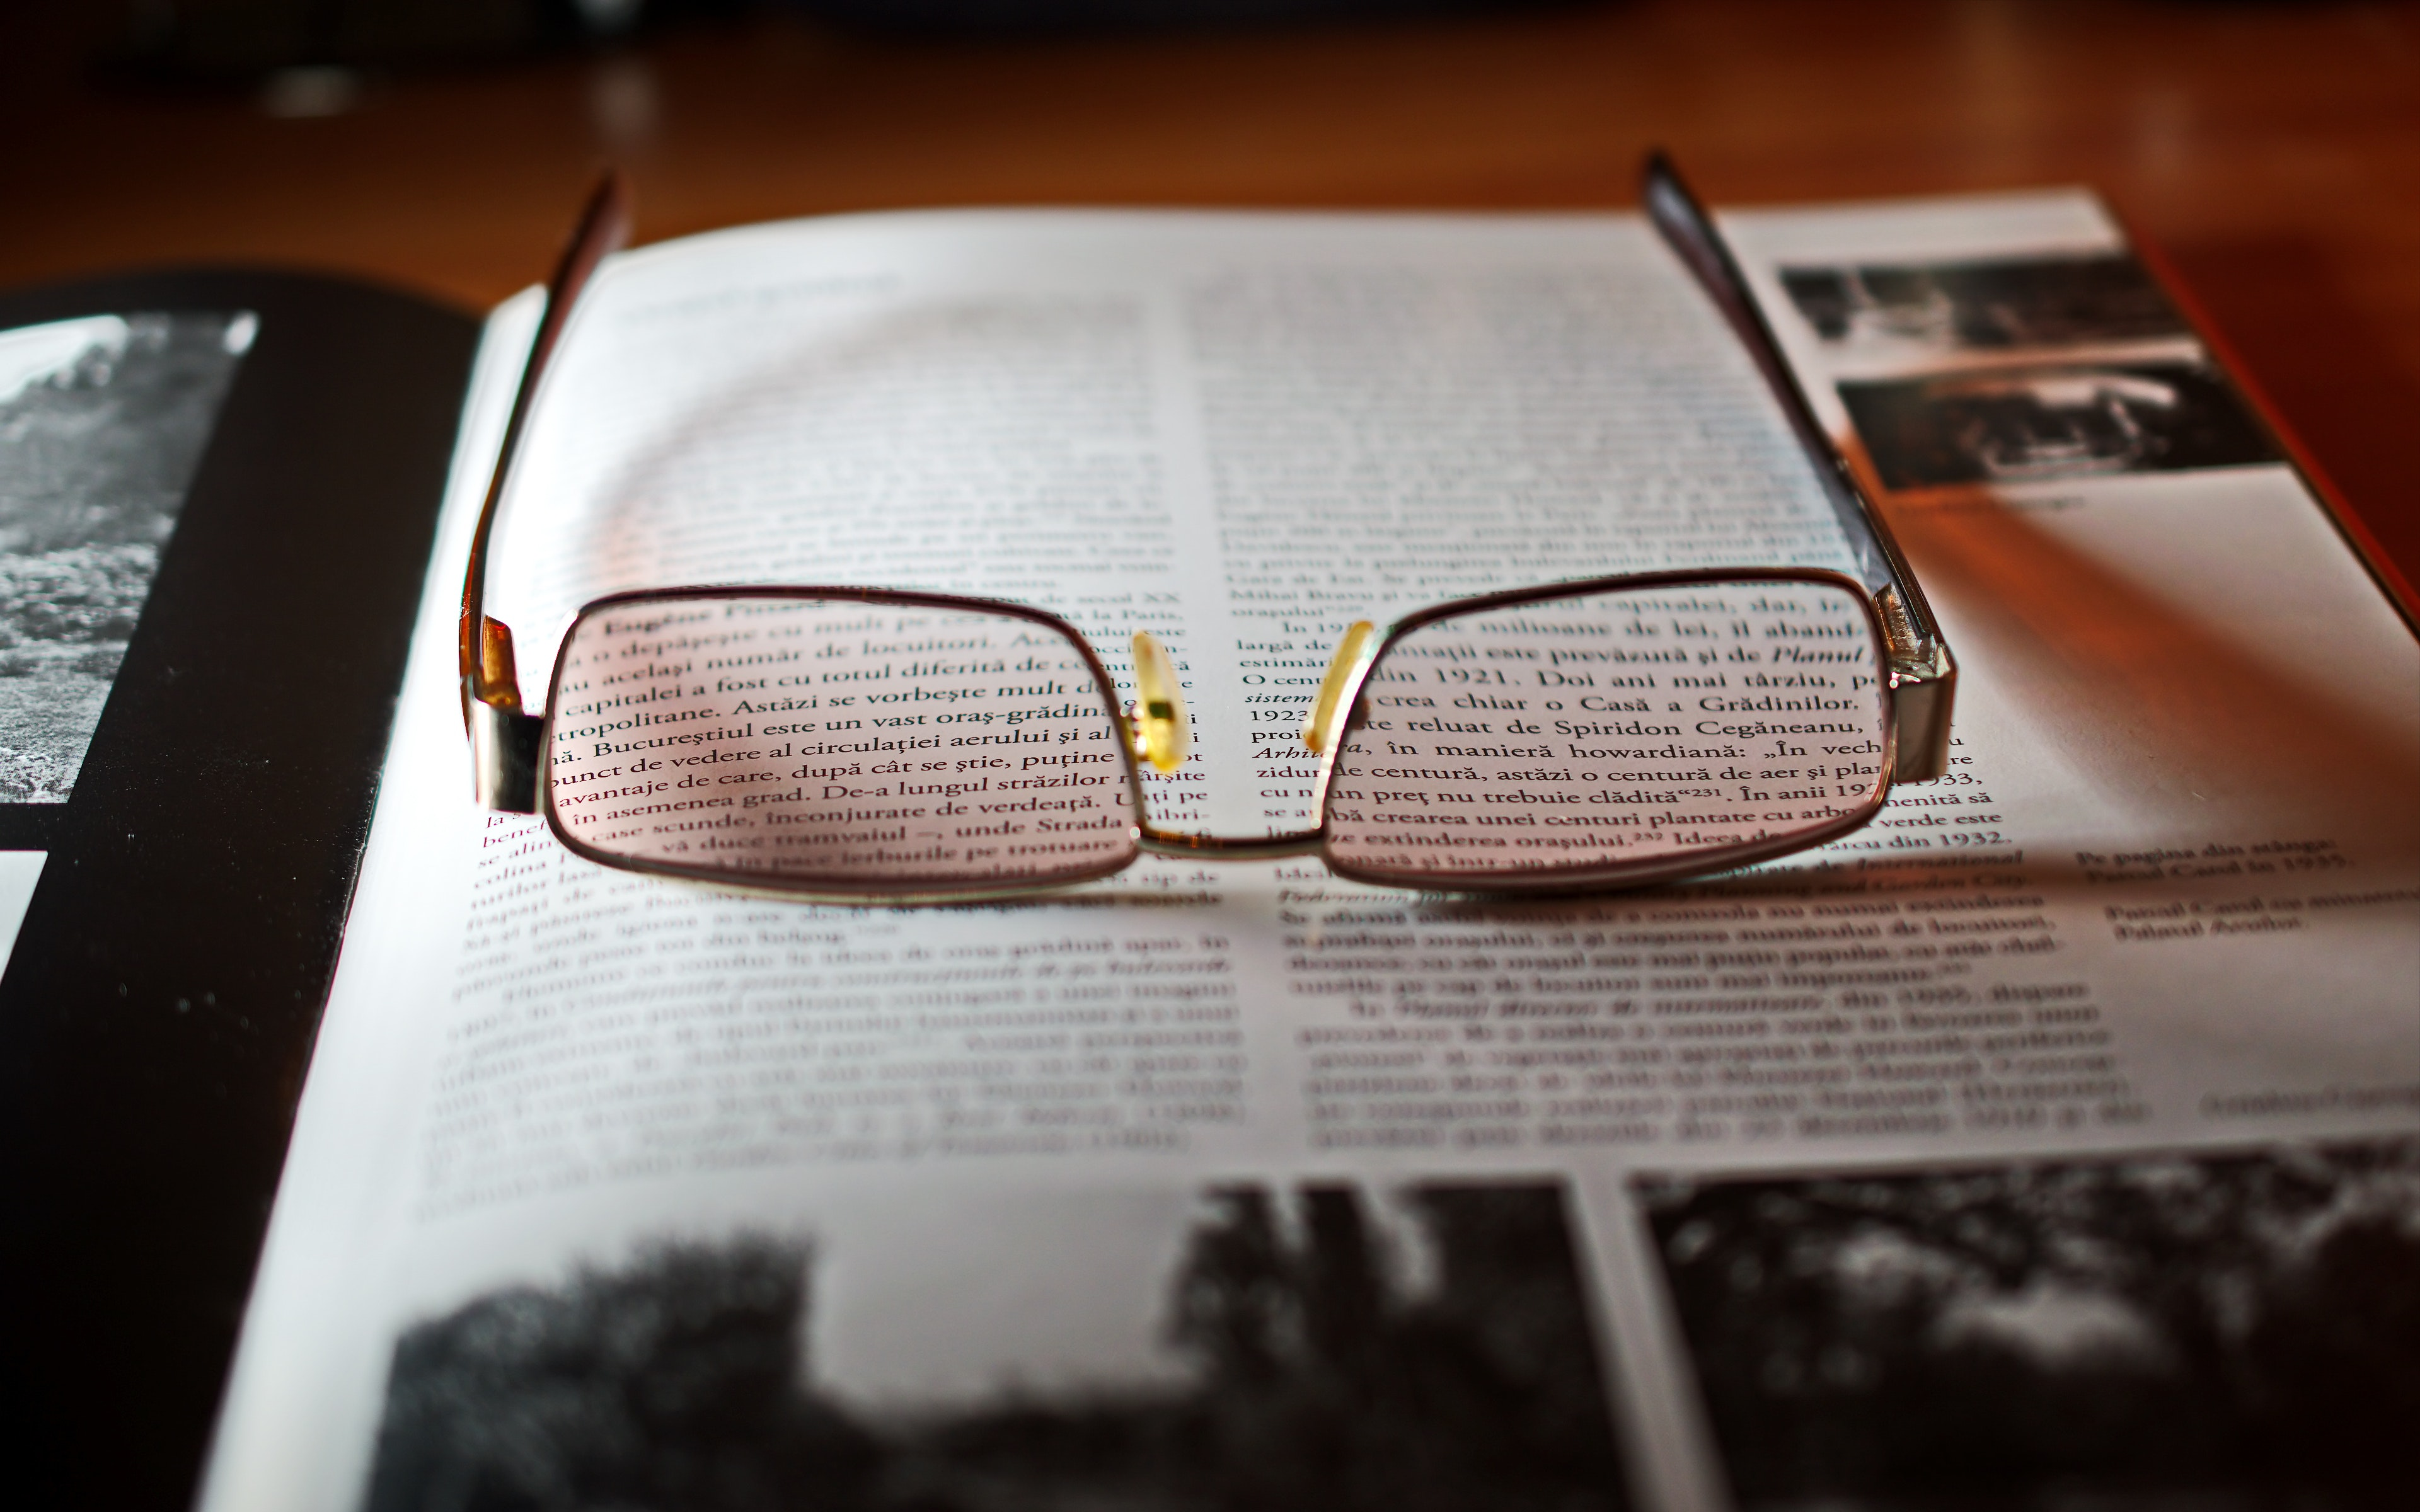 Eyeglasses With Gold-colored Frame on Opened Book, Book, Book pages, Close-up, Eye glasses, HQ Photo